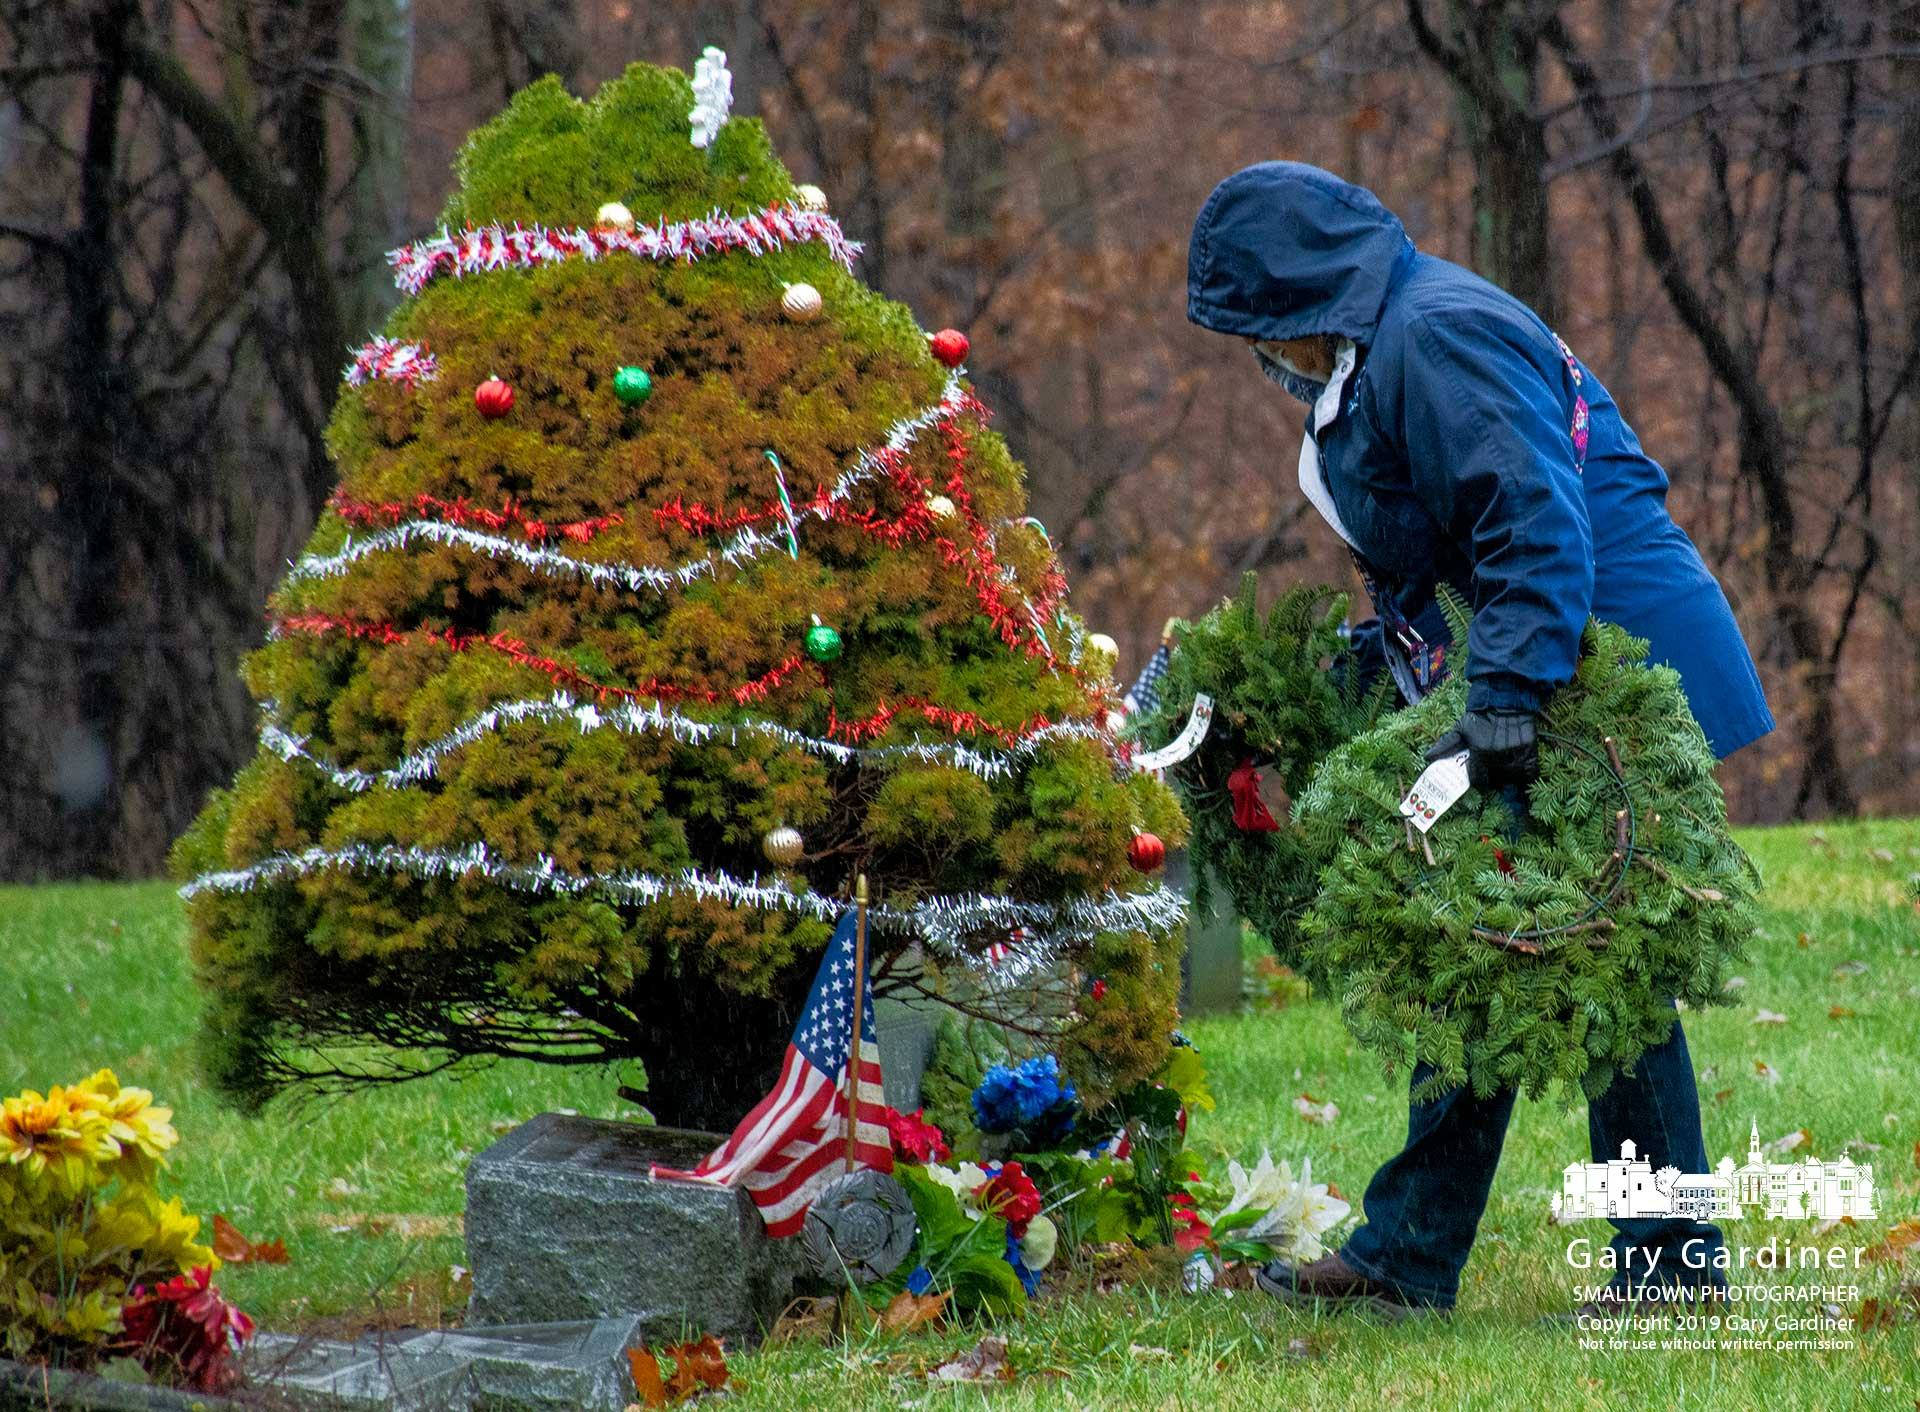 A volunteer places a wreath at the gravestone for Lt. Dingus Banks at Otterbein Cemetery where 520 wreaths were placed as part of Wreaths Across America. My Final Photo for Dec. 15, 2019.